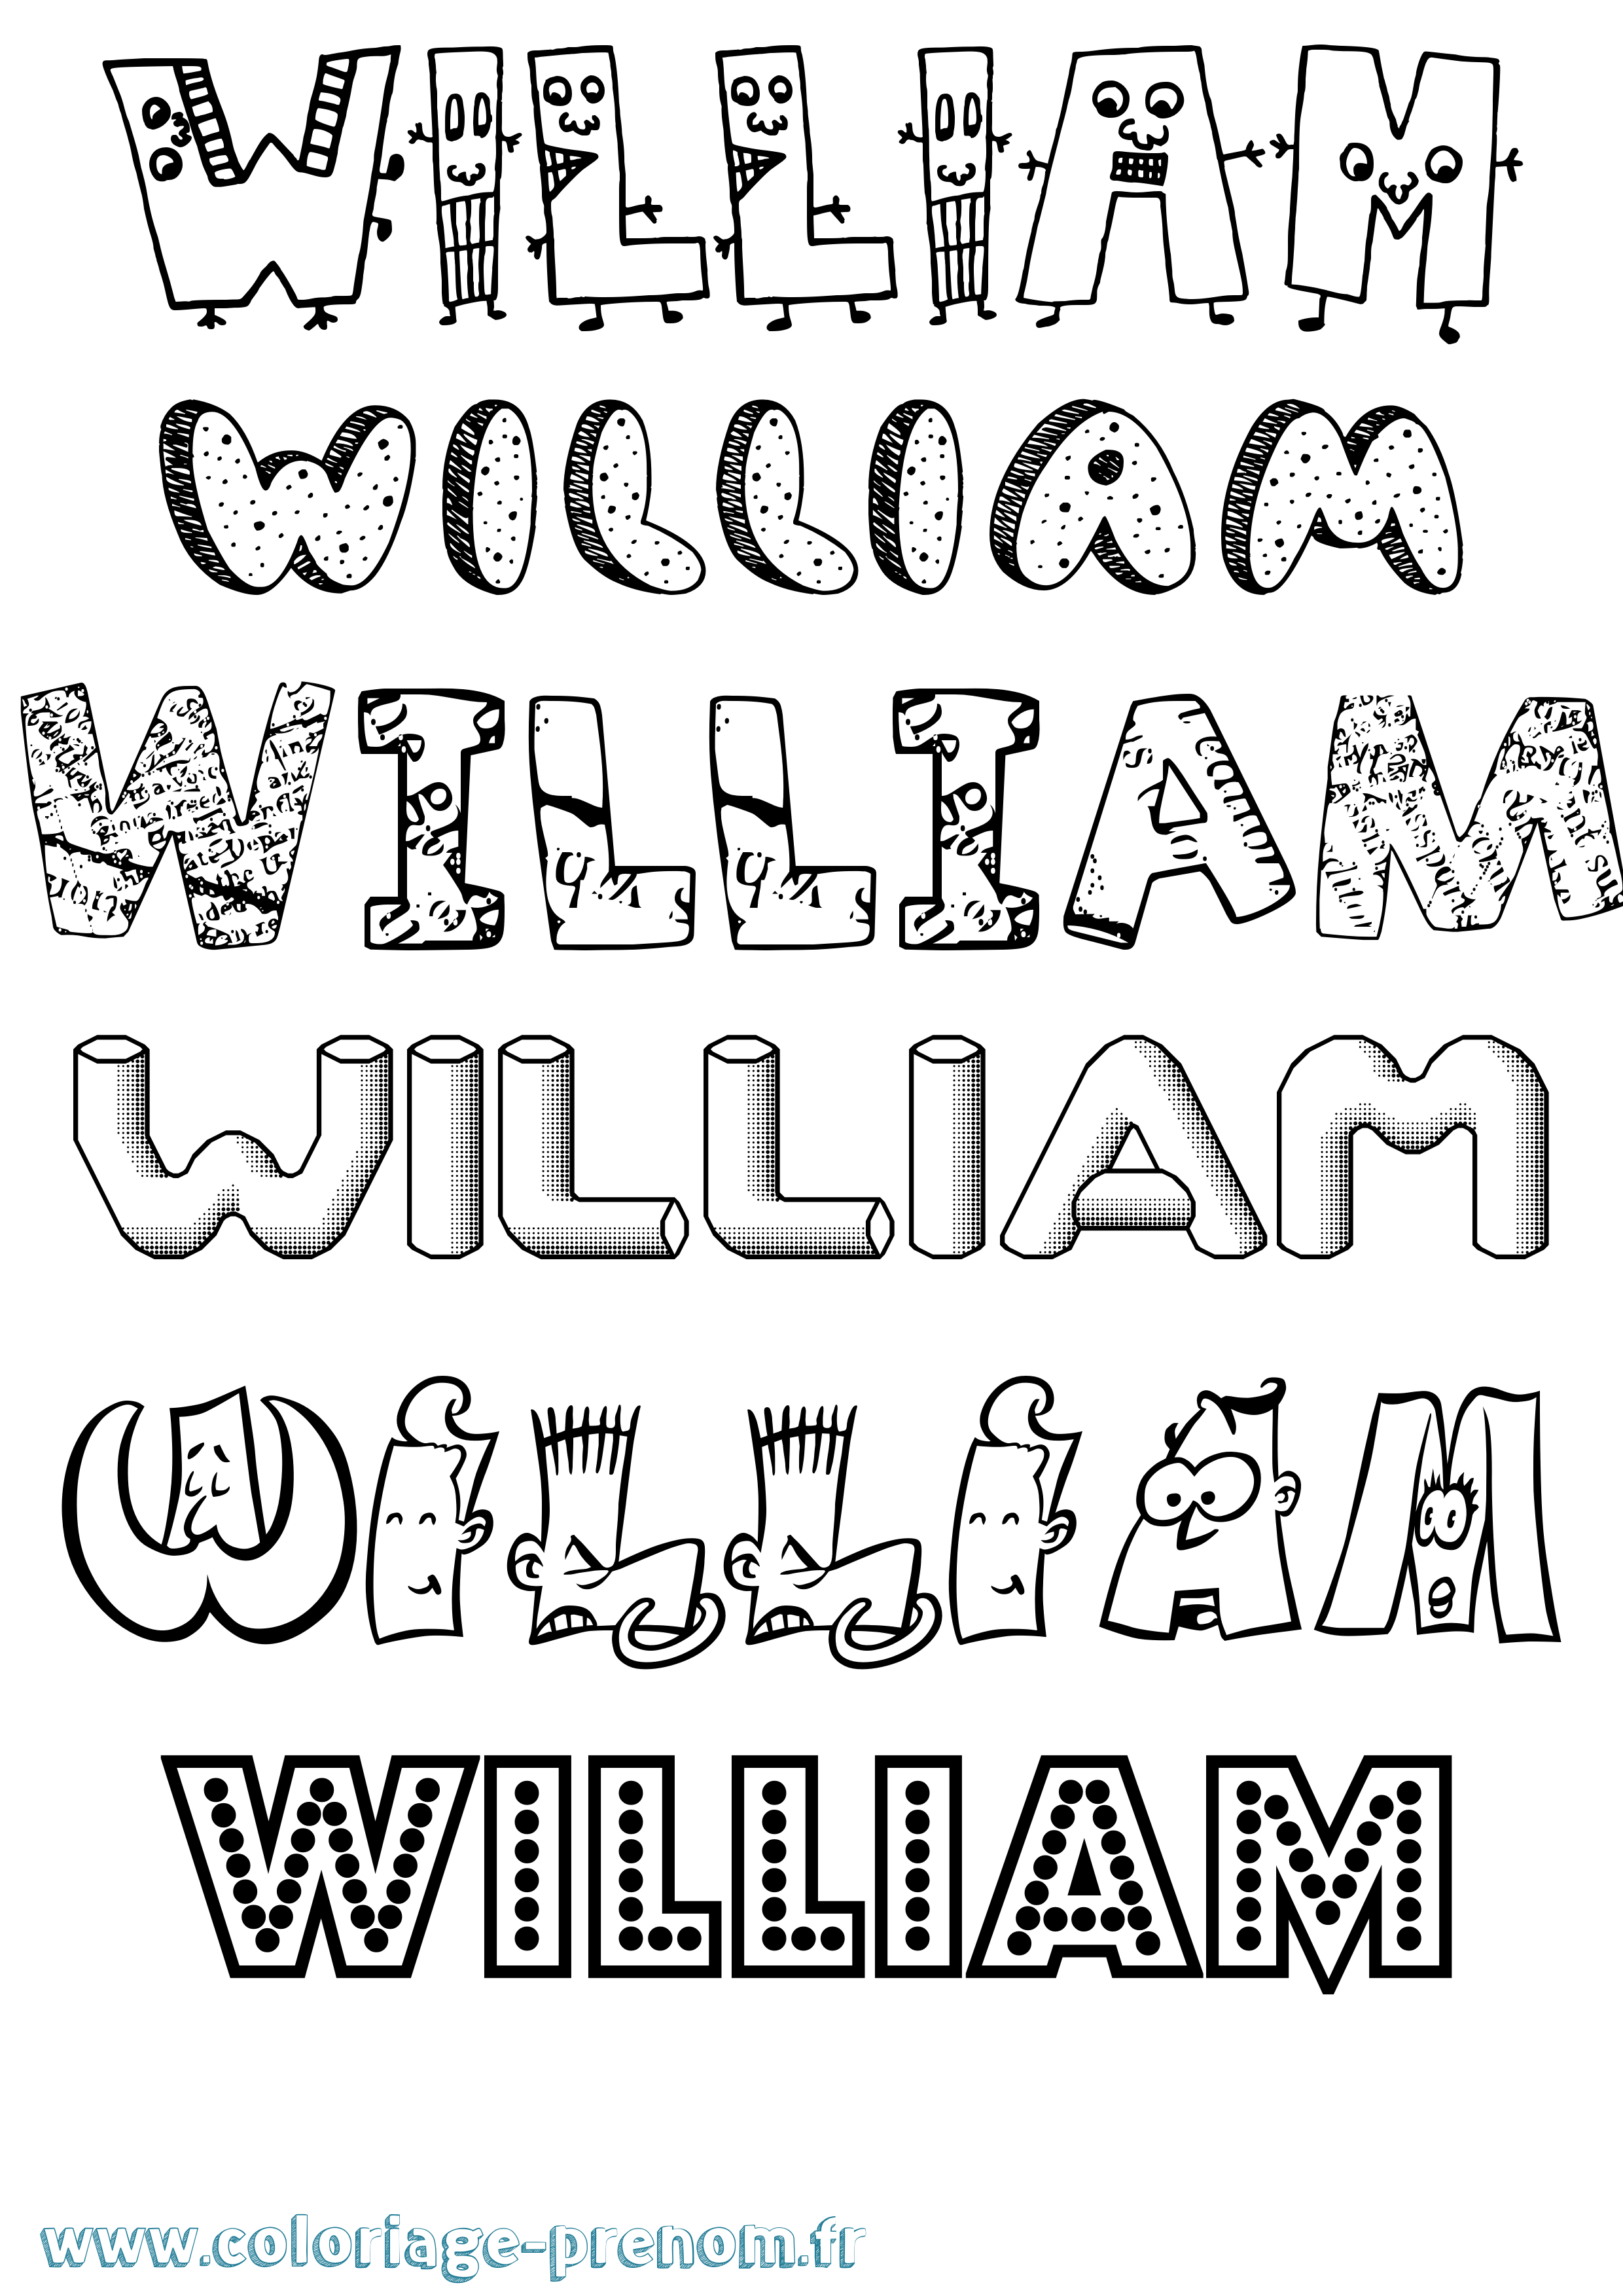 Coloriage prénom William